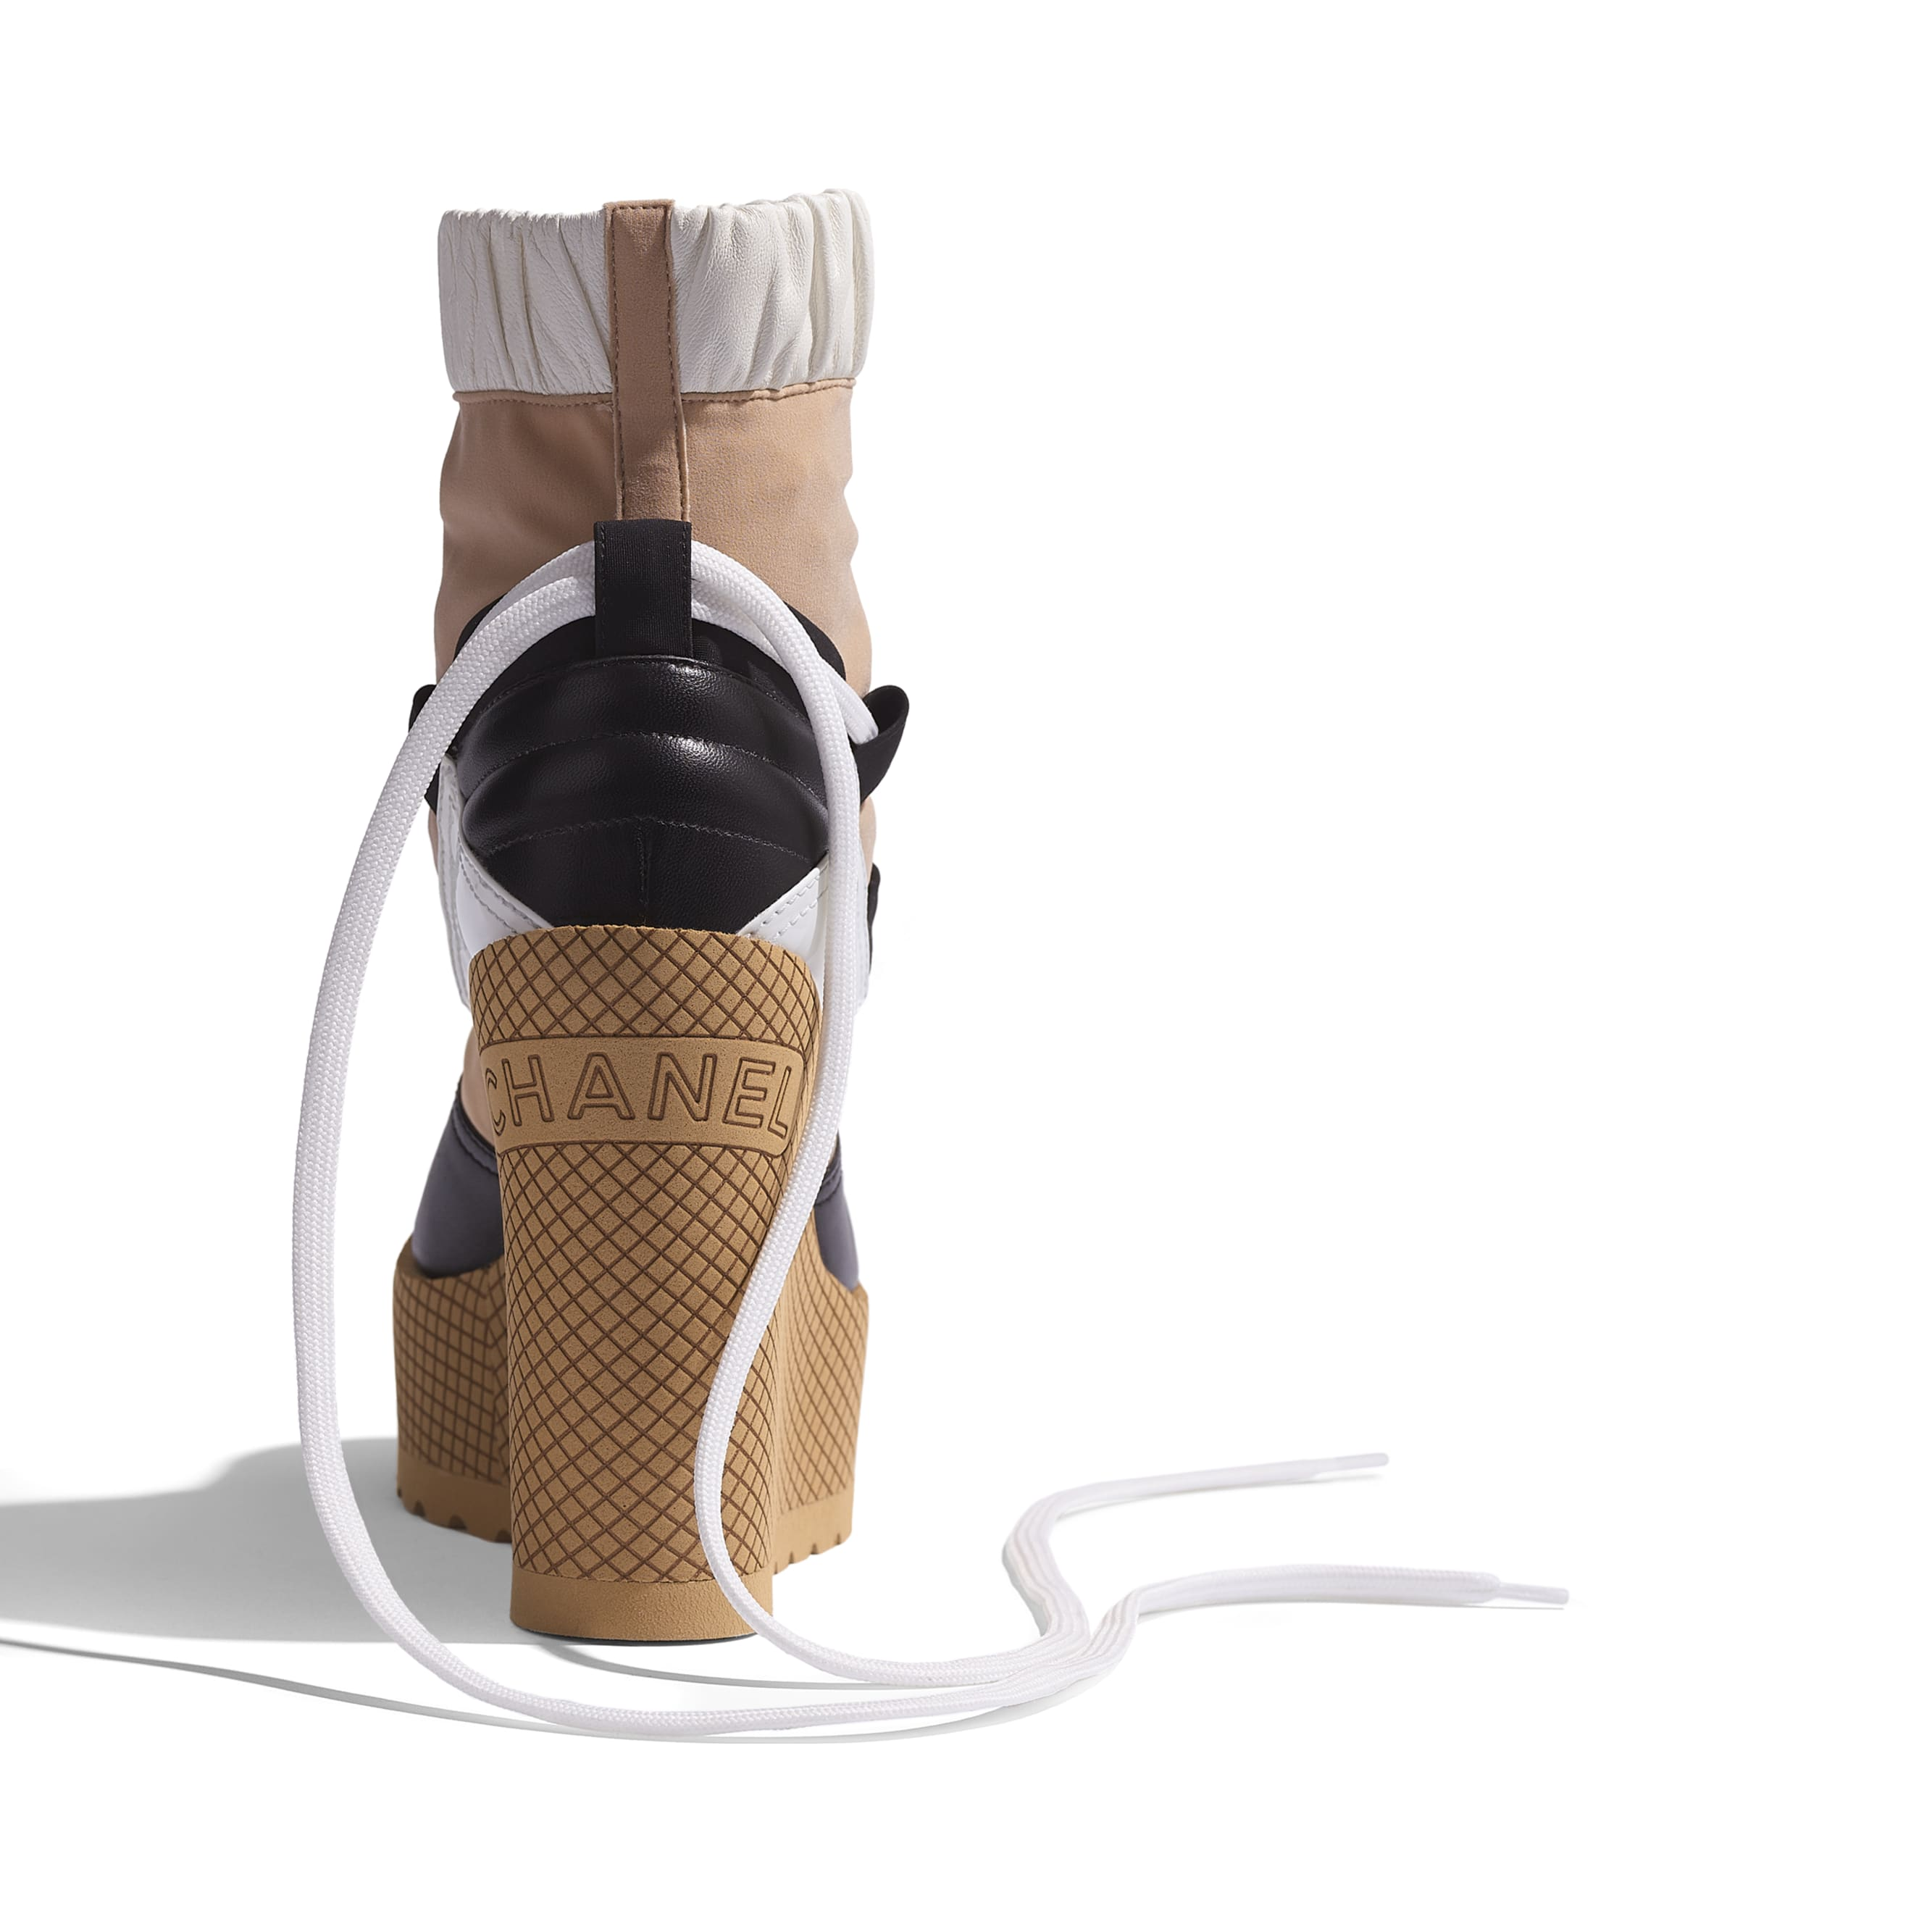 Lace-Ups - Beige, Black & White - Mixed Fibers, Lambskin & Calfskin - Extra view - see standard sized version